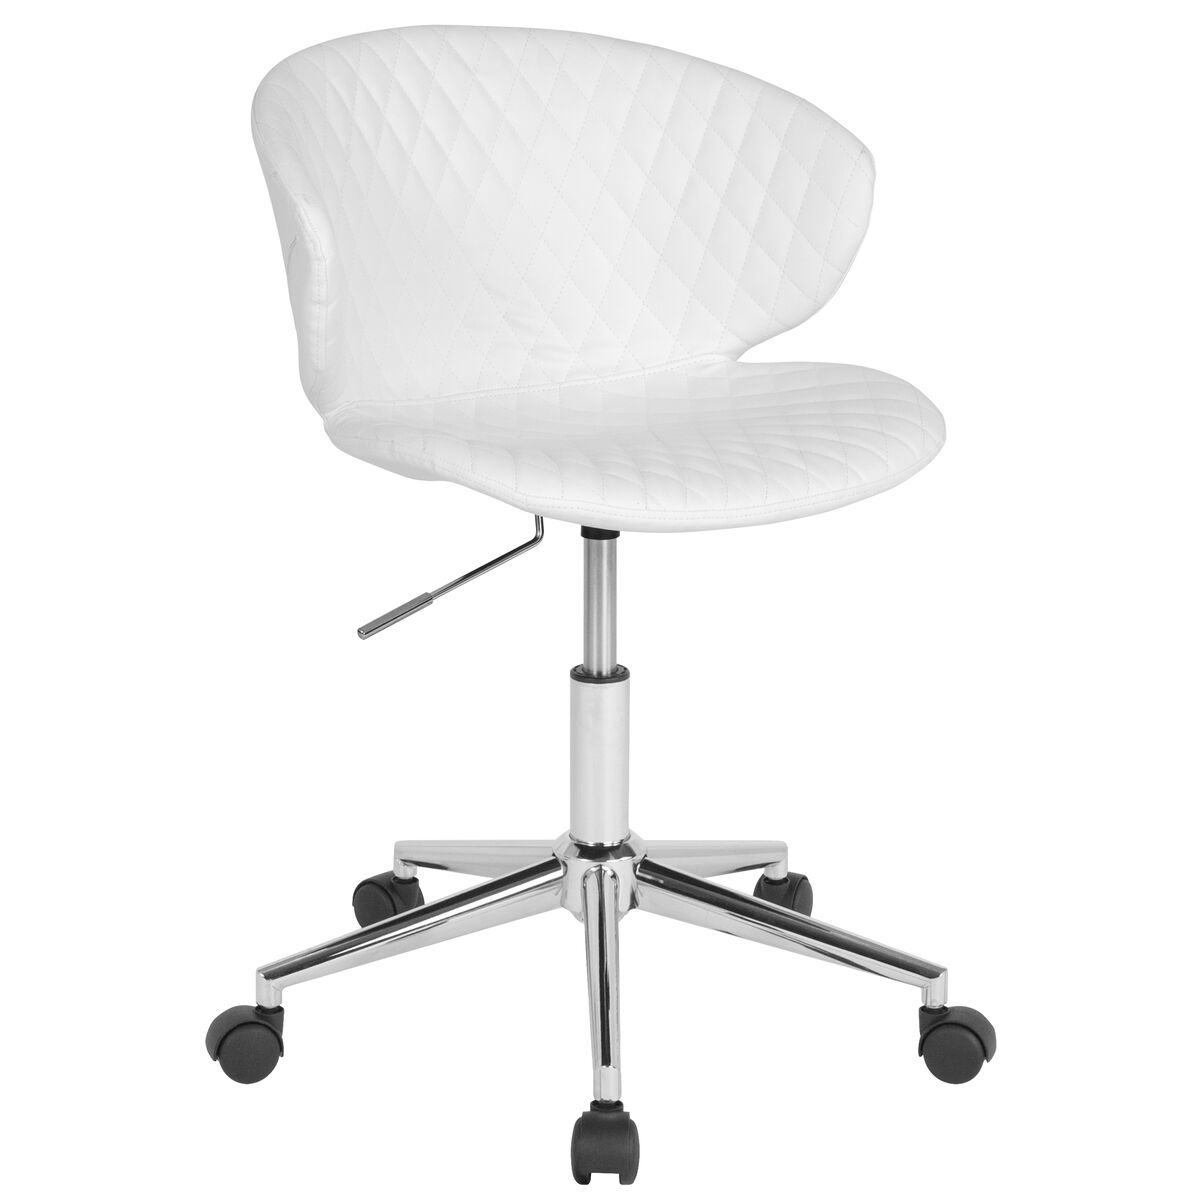 Our Cambridge Home And Office Upholstered Mid Back Chair In White Vinyl Is On